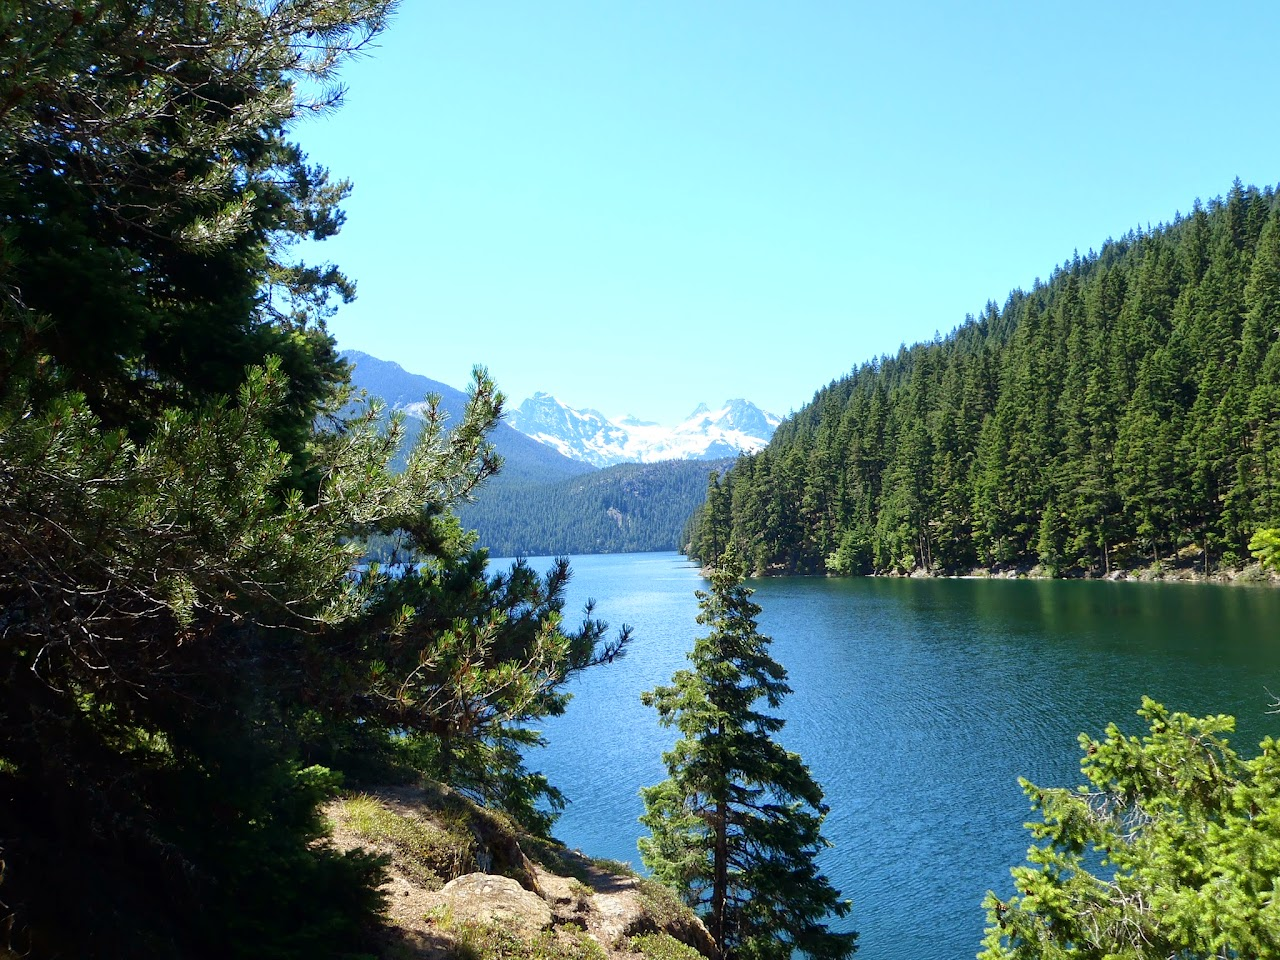 Ross Lake July 2014 - P7080080.JPG